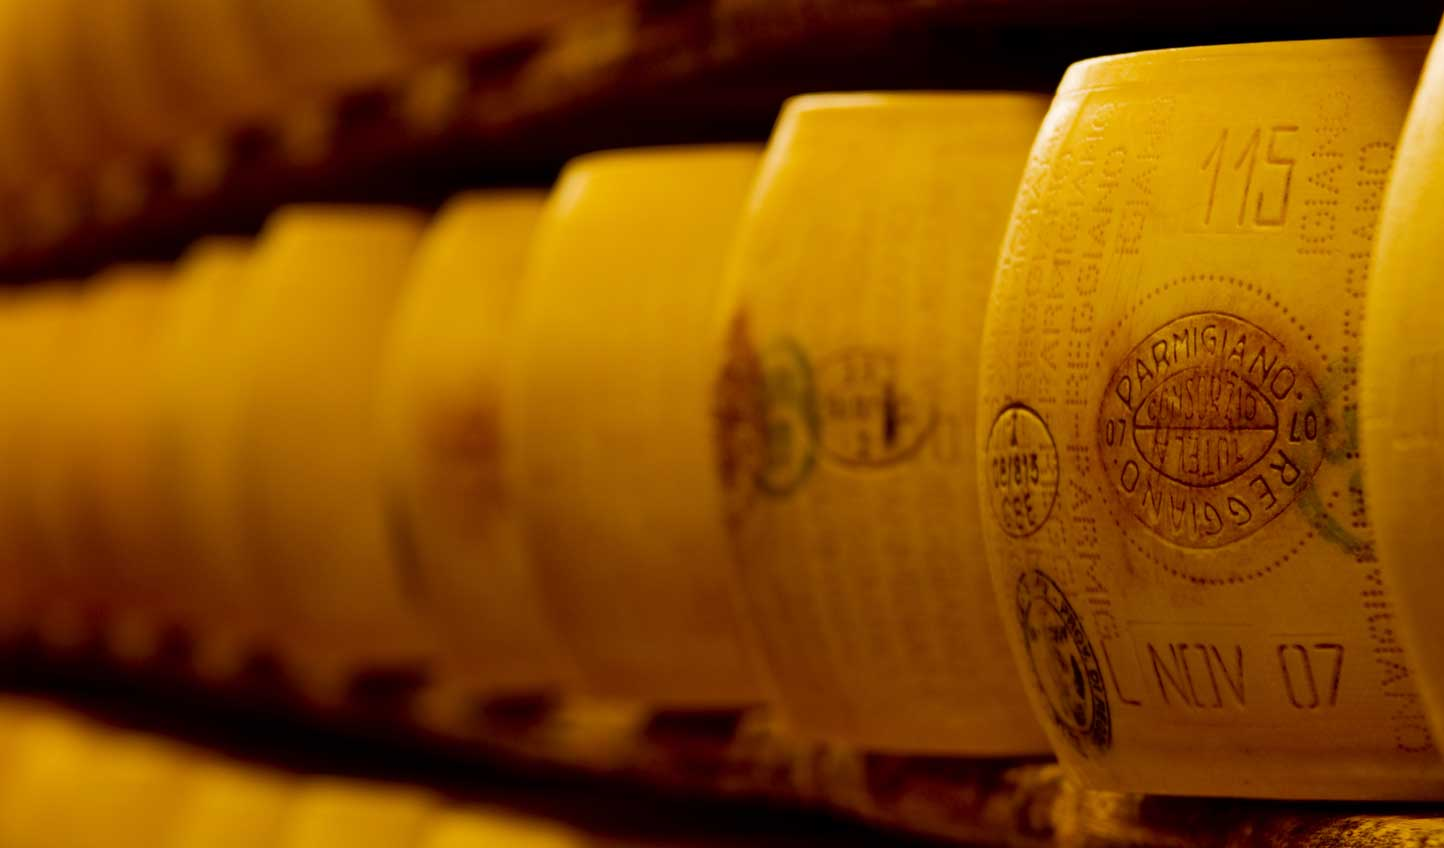 Get your tastebuds going with a Parmigiano Reggiano tasting